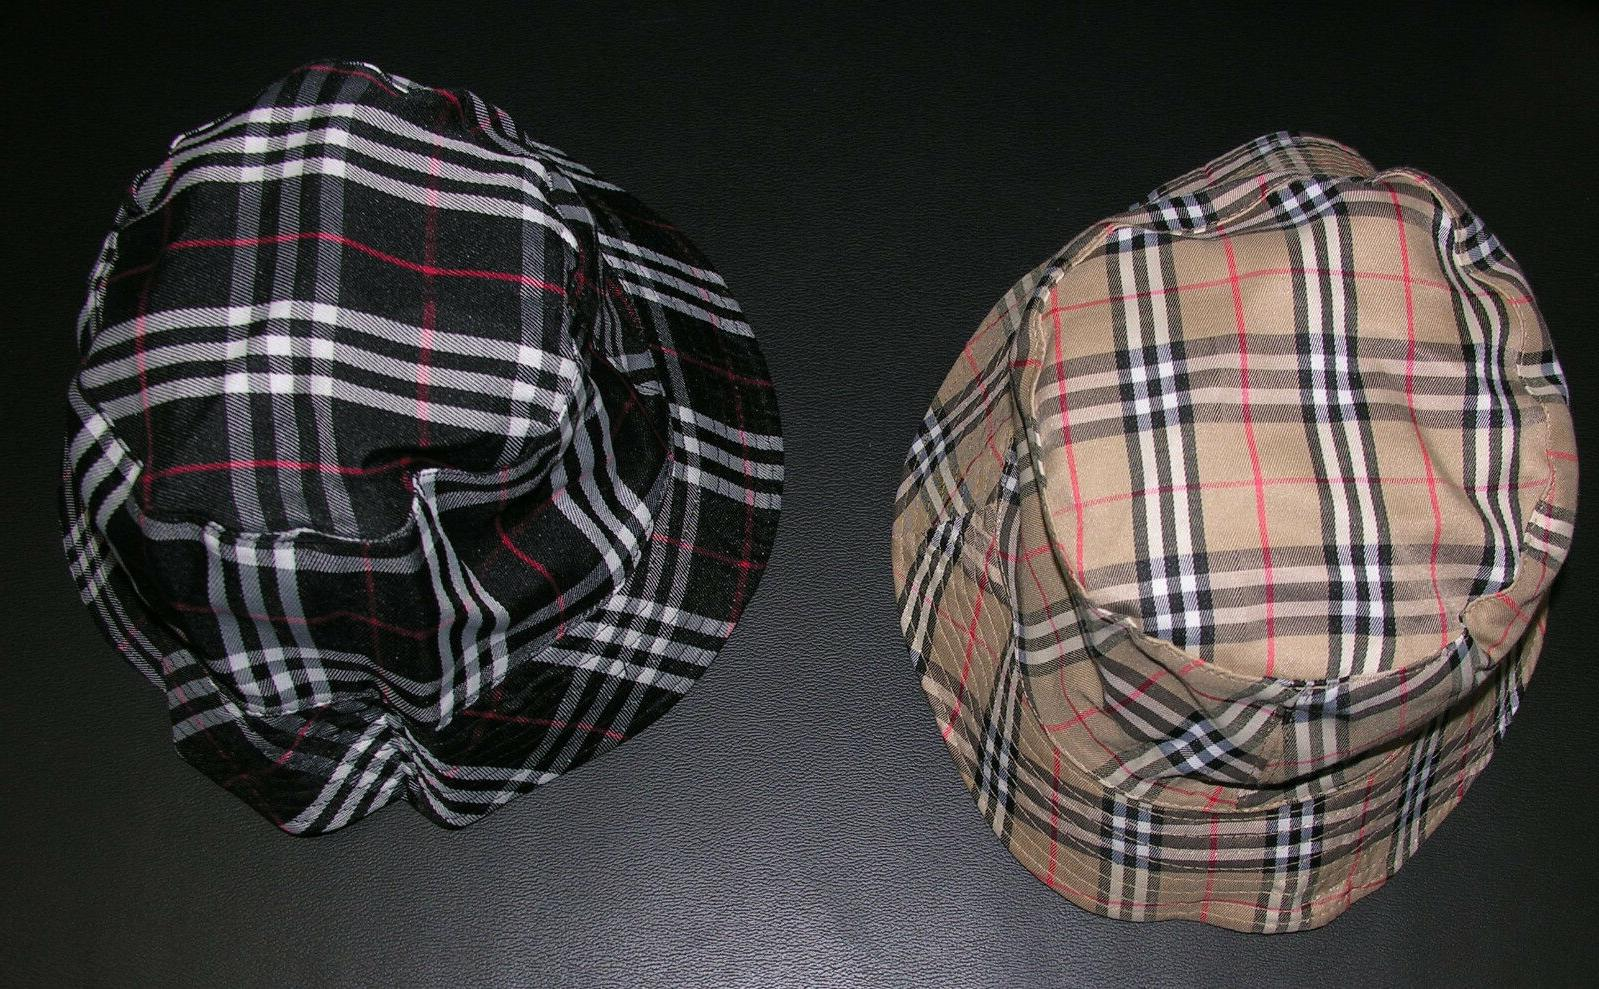 brand new reversible bucket hat one size